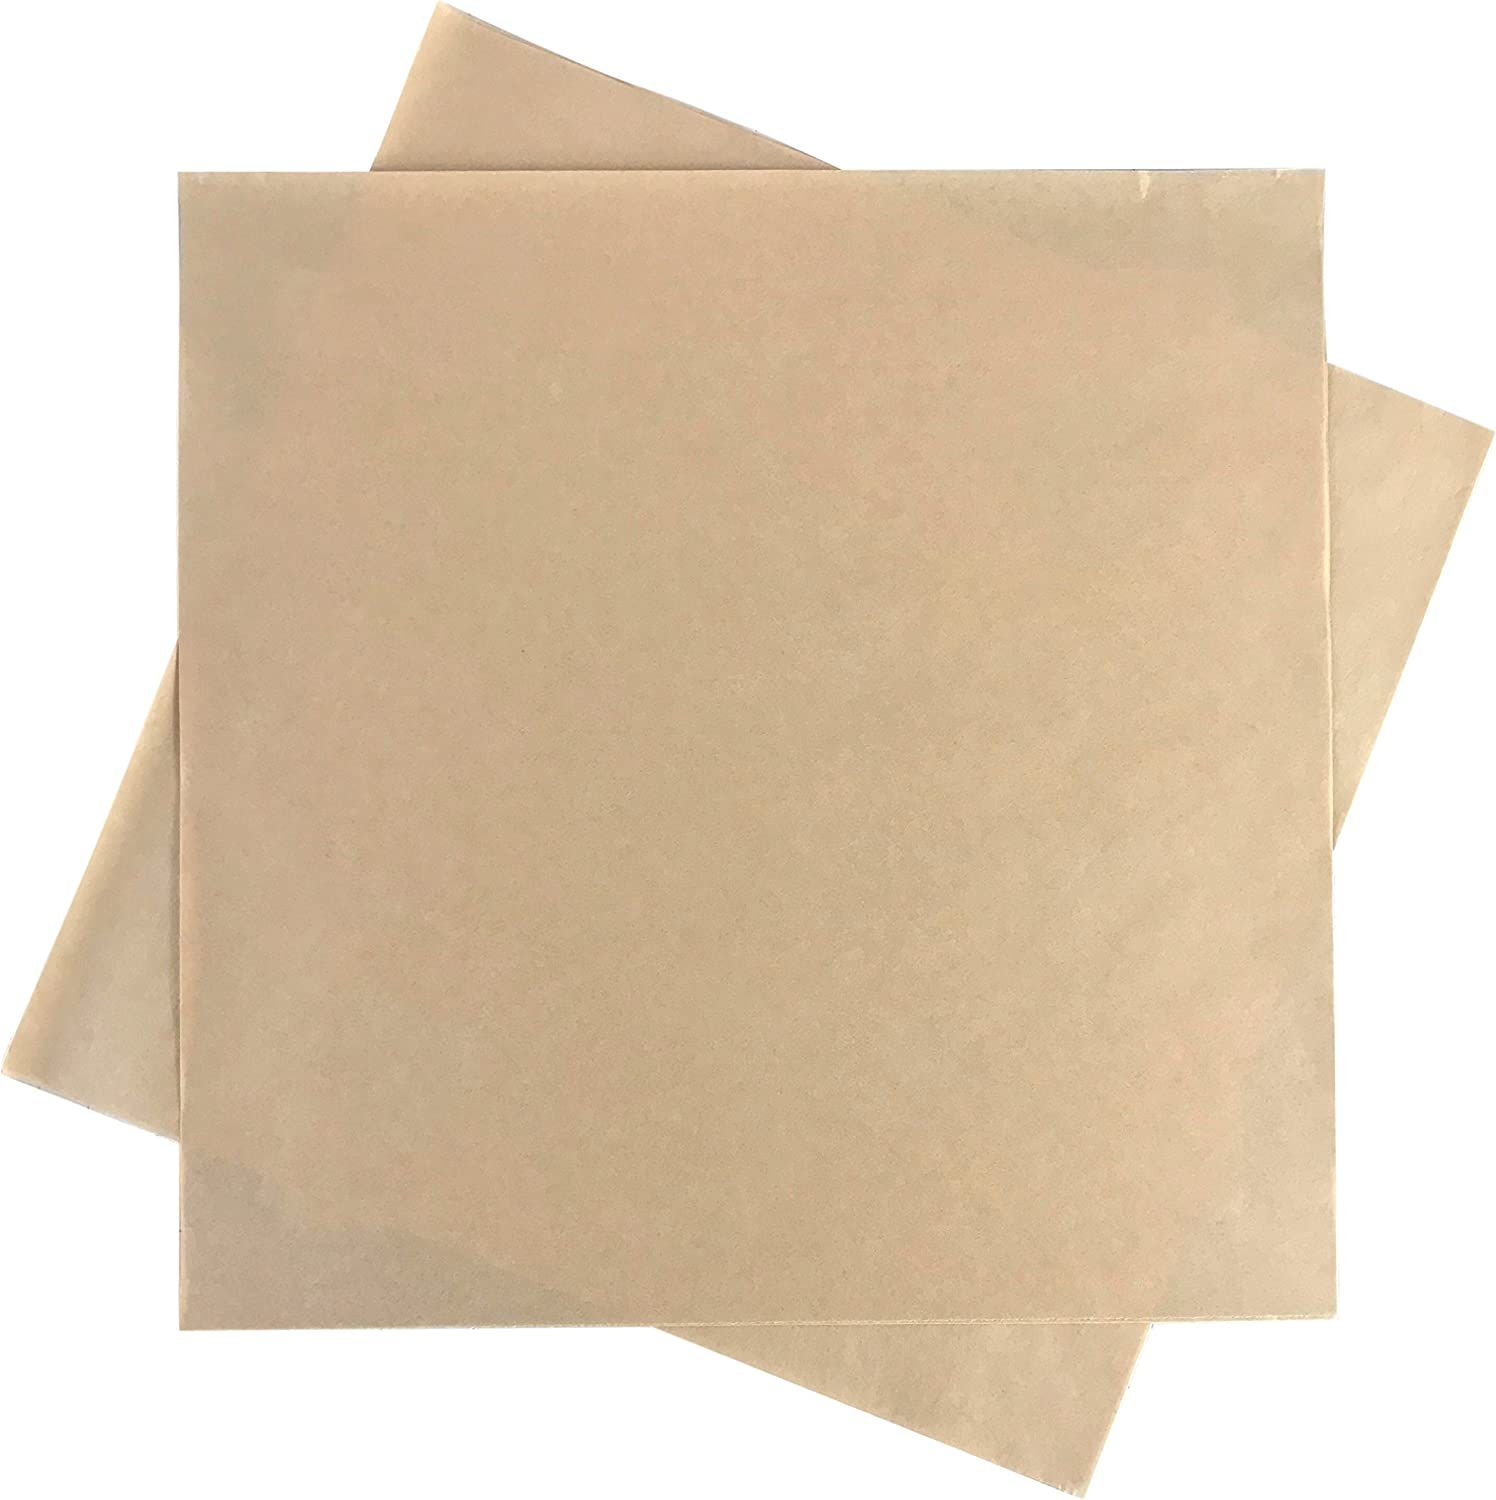 "Deli Squares - Paper Sheets (12"" x 12"") (Natural Brown - 250 Sheets)"